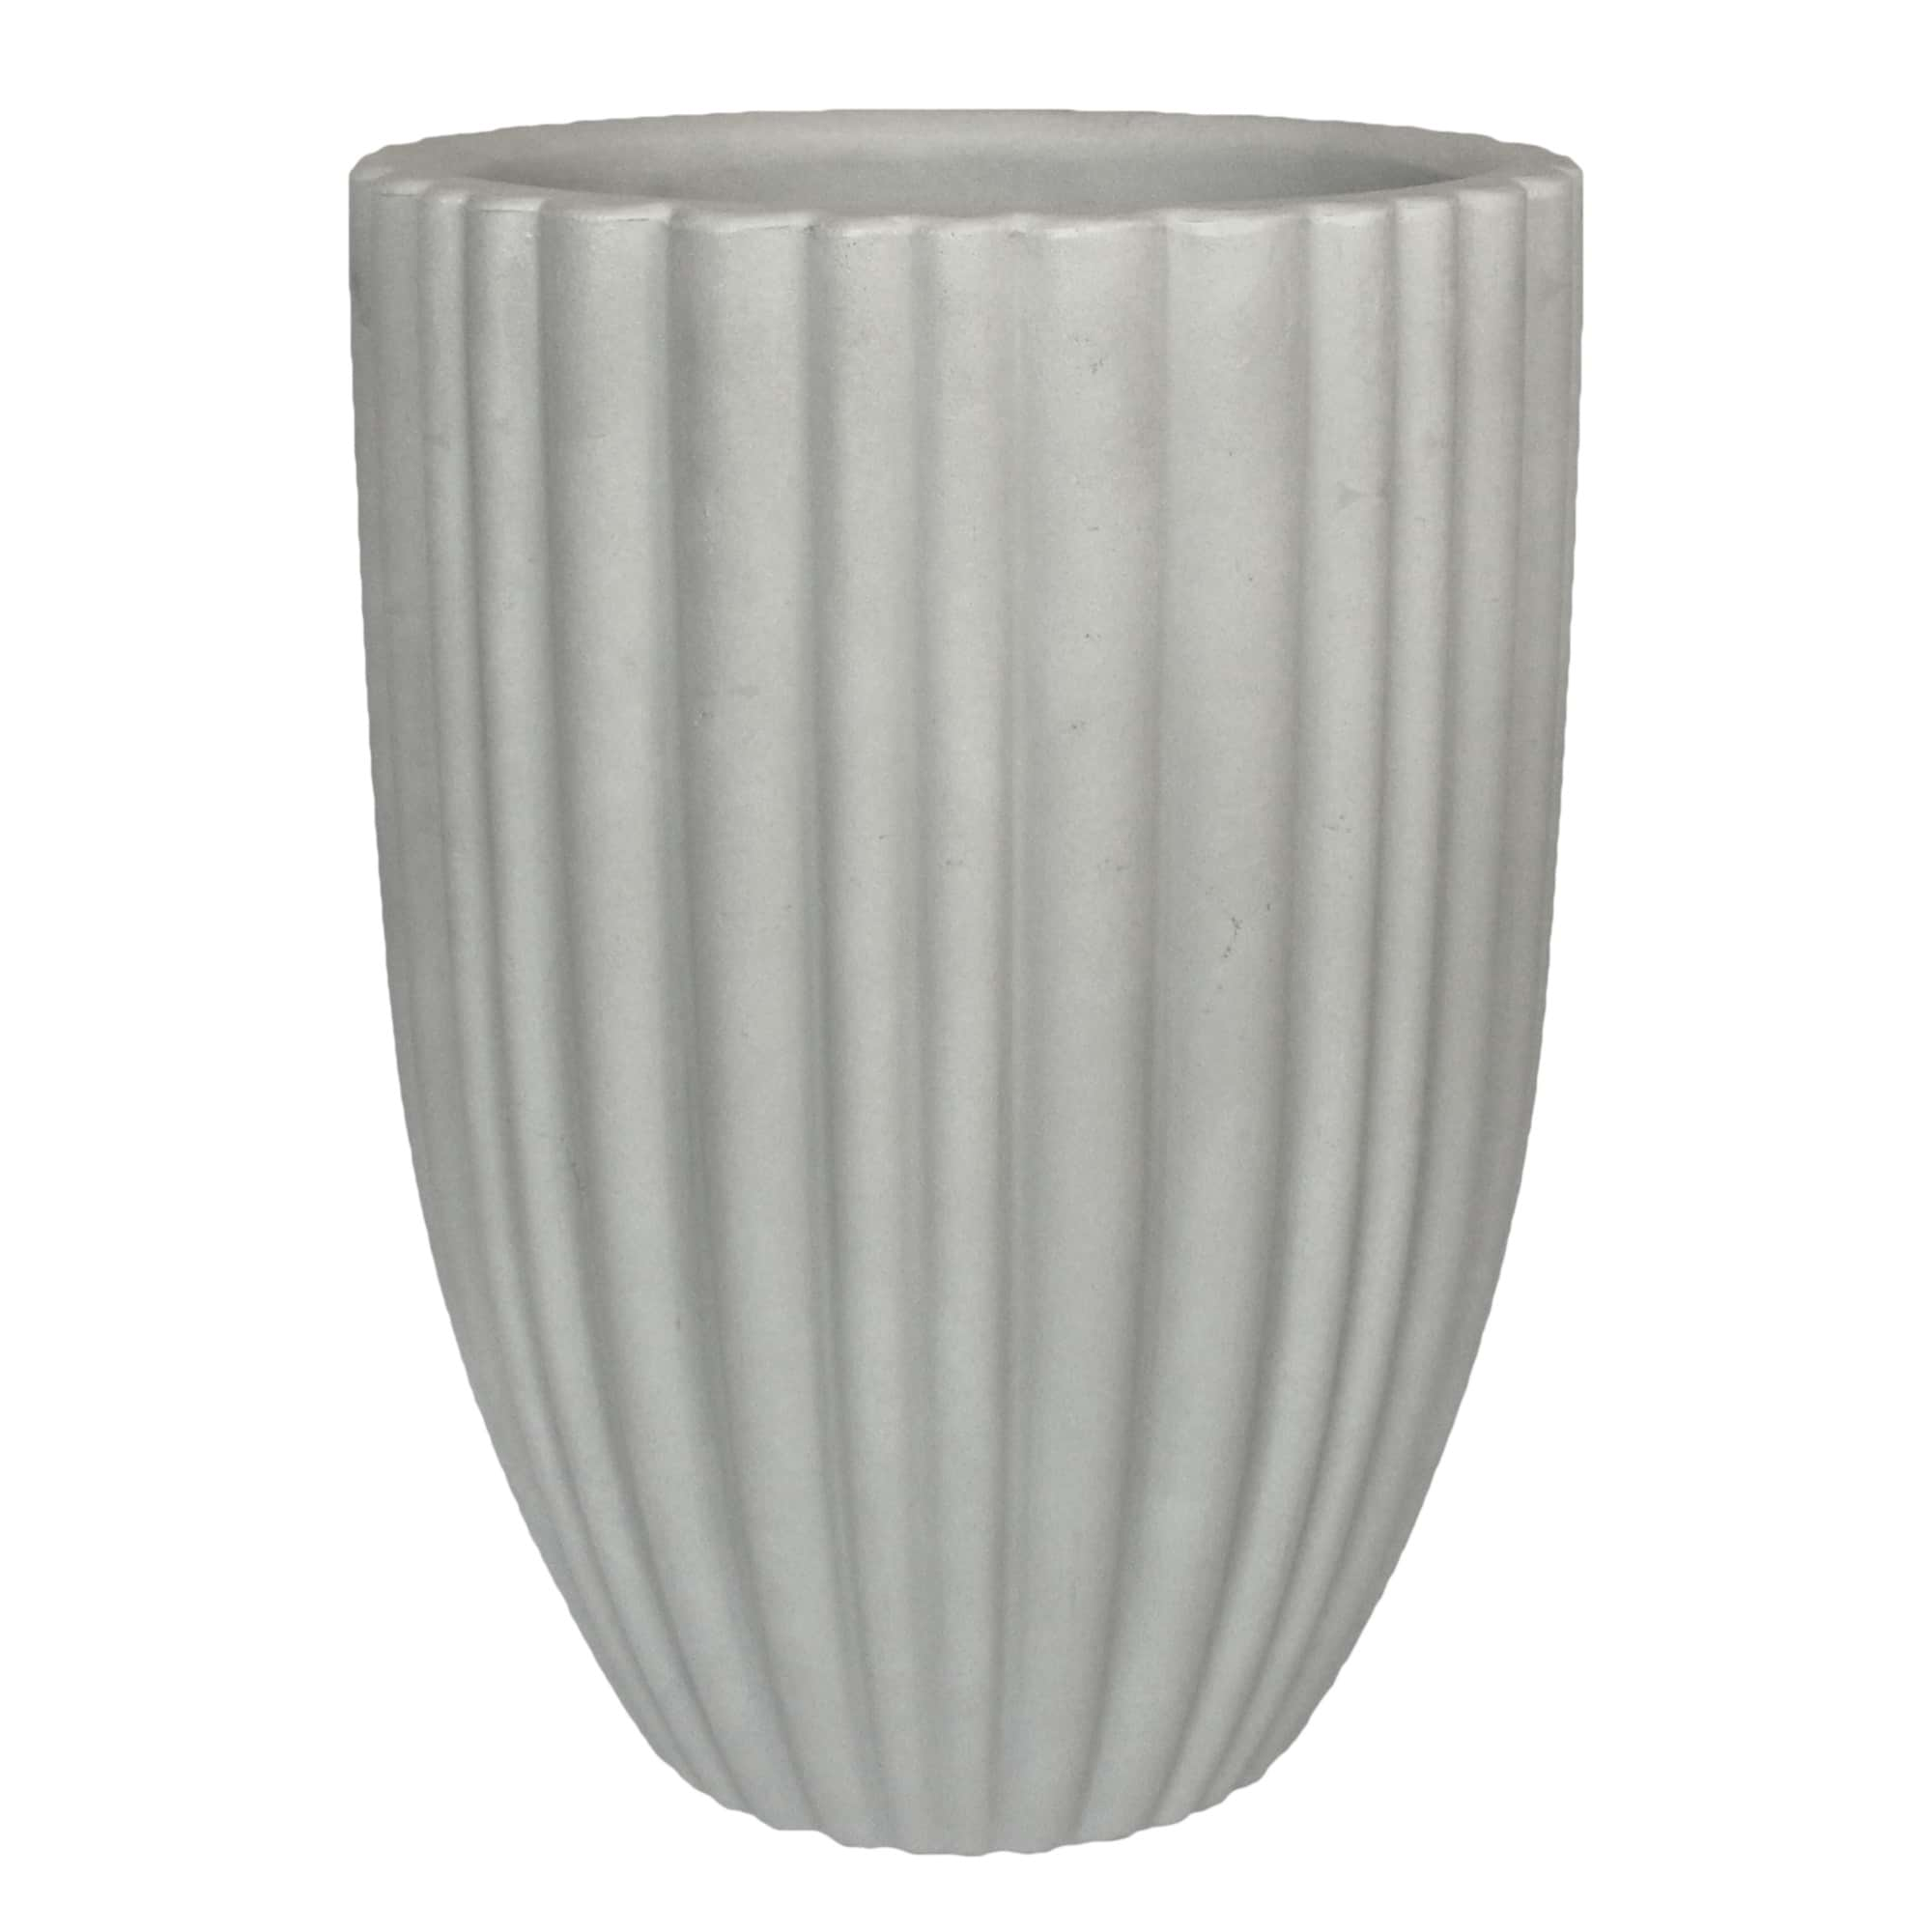 Vaso Cacau 42 x 54 cm Antique Branco